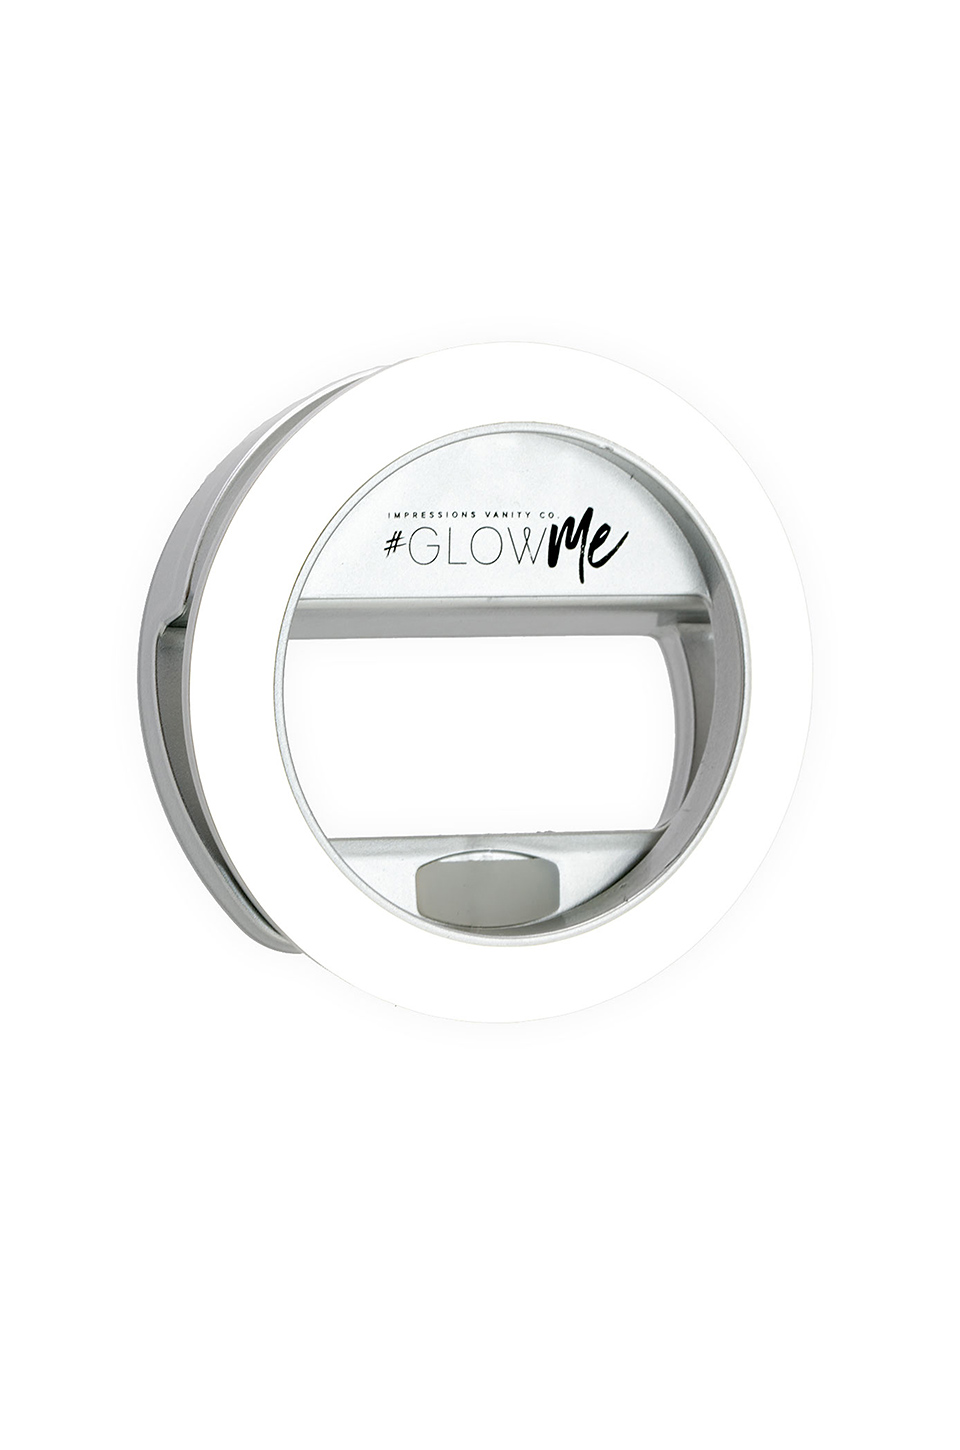 Impressions Vanity GlowMe 2.0 USB Rechargeable LED Selfie Ring Light in Shimmery Silver